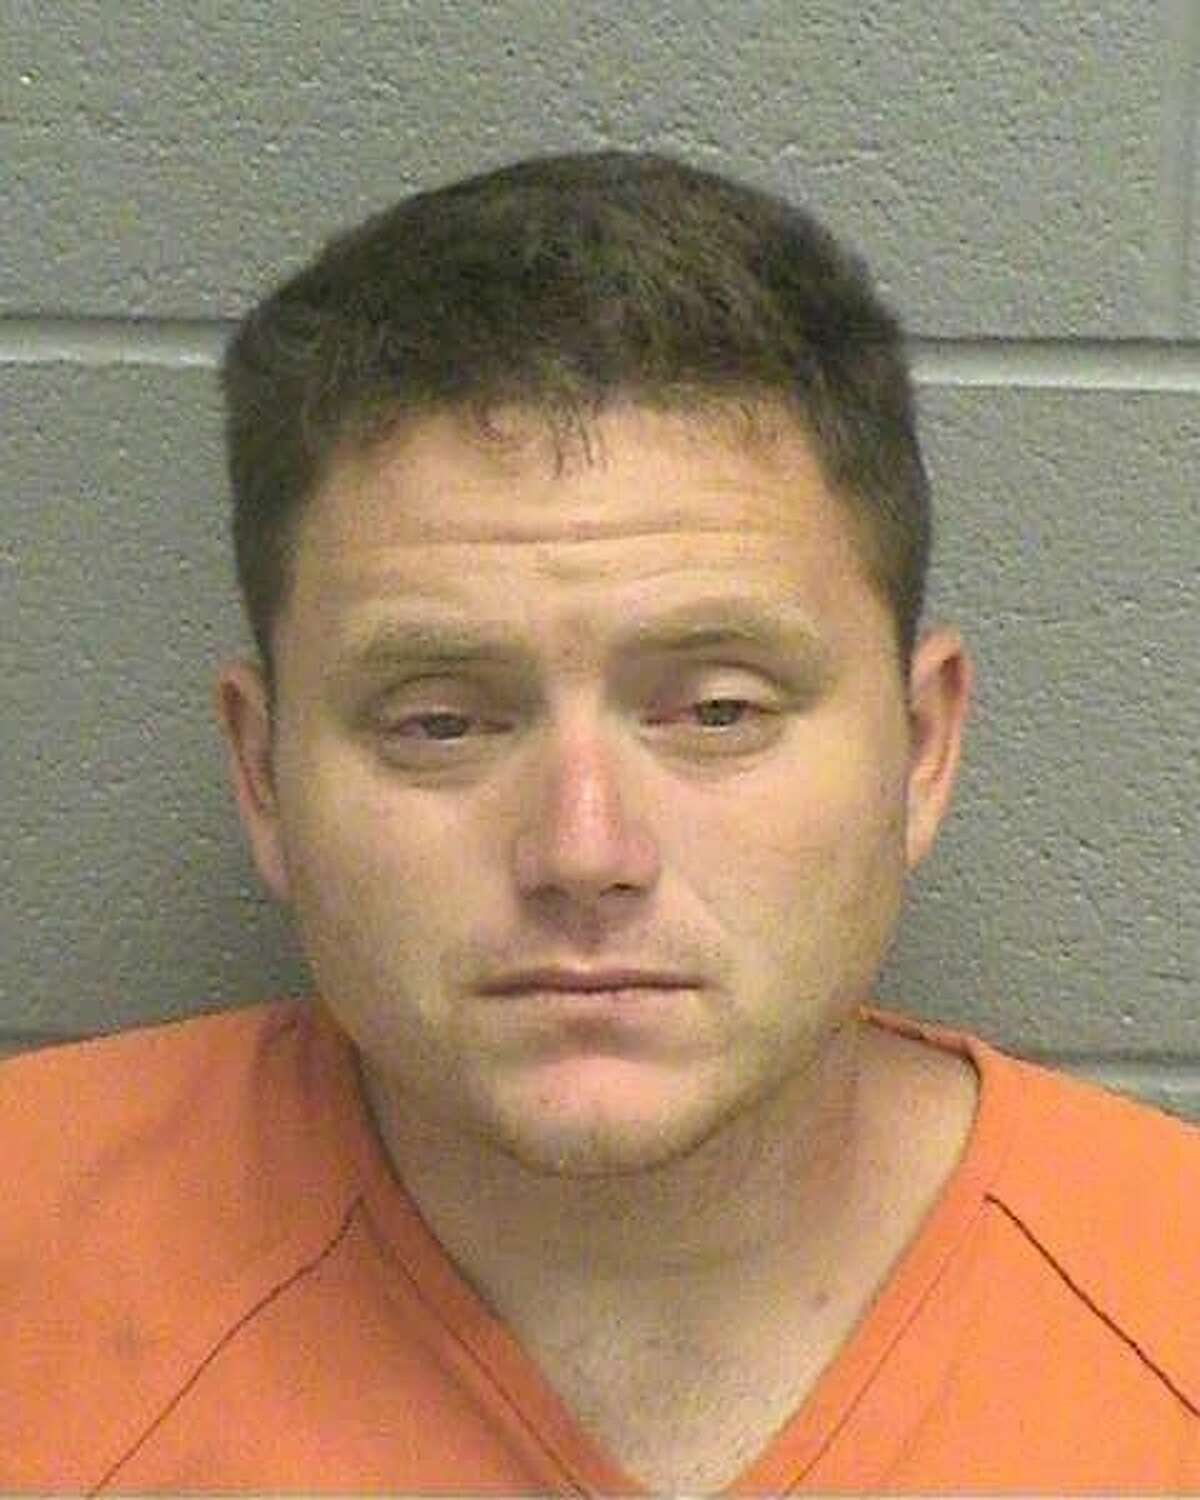 """Julius Avery Roberson, 28, was being held Tuesday on a $30,000 bond for a second-degree felony charge of possessing more than five identifying documents without consent of another individual, according to court documents.Police were dispatched to the 3000 block of West Cuthbert Avenue because of an alleged theft of services involving Roberson. Police found Roberson and a woman at a store and detained Roberson, who """"seemed to be on some type of narcotics,"""" according to his arrest affidavit.If convicted of a second-degree felony, Roberson could face up to 20 years in prison."""